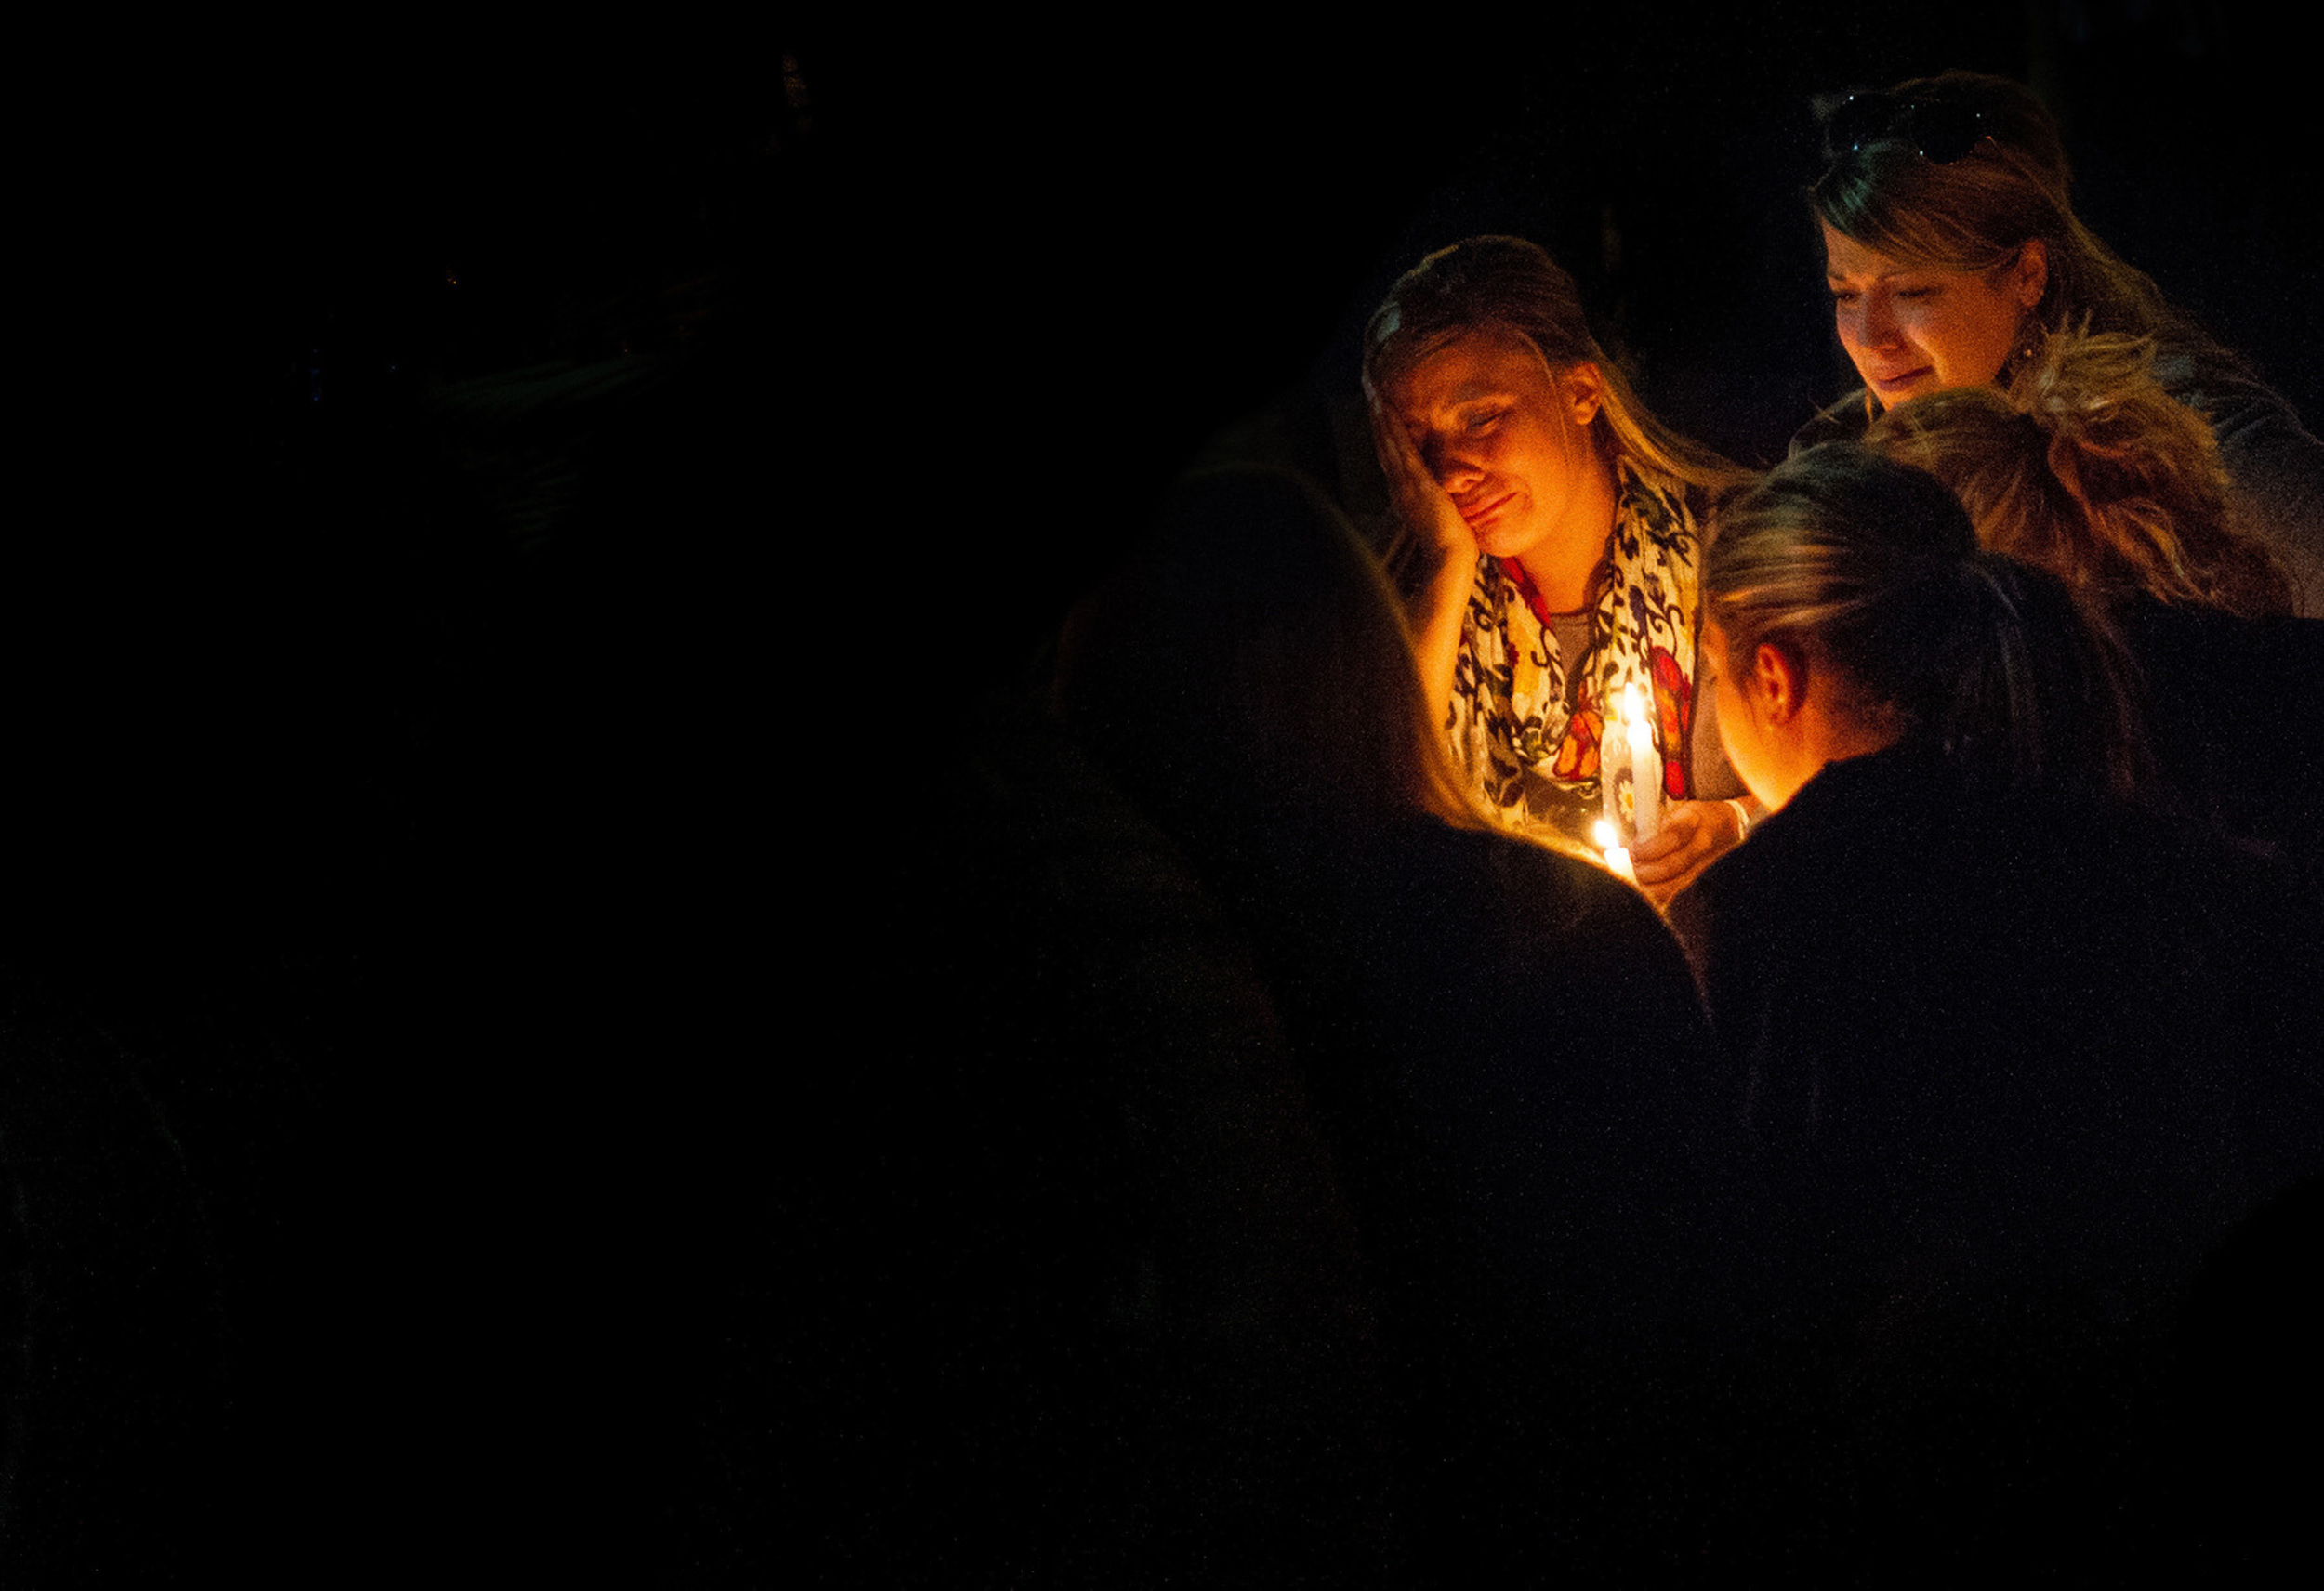 Towson University students gather together to mourn the death of two fraternity members who died over the same weekend in two separate incidents on March 31, 2012 in Baltimore, Maryland.